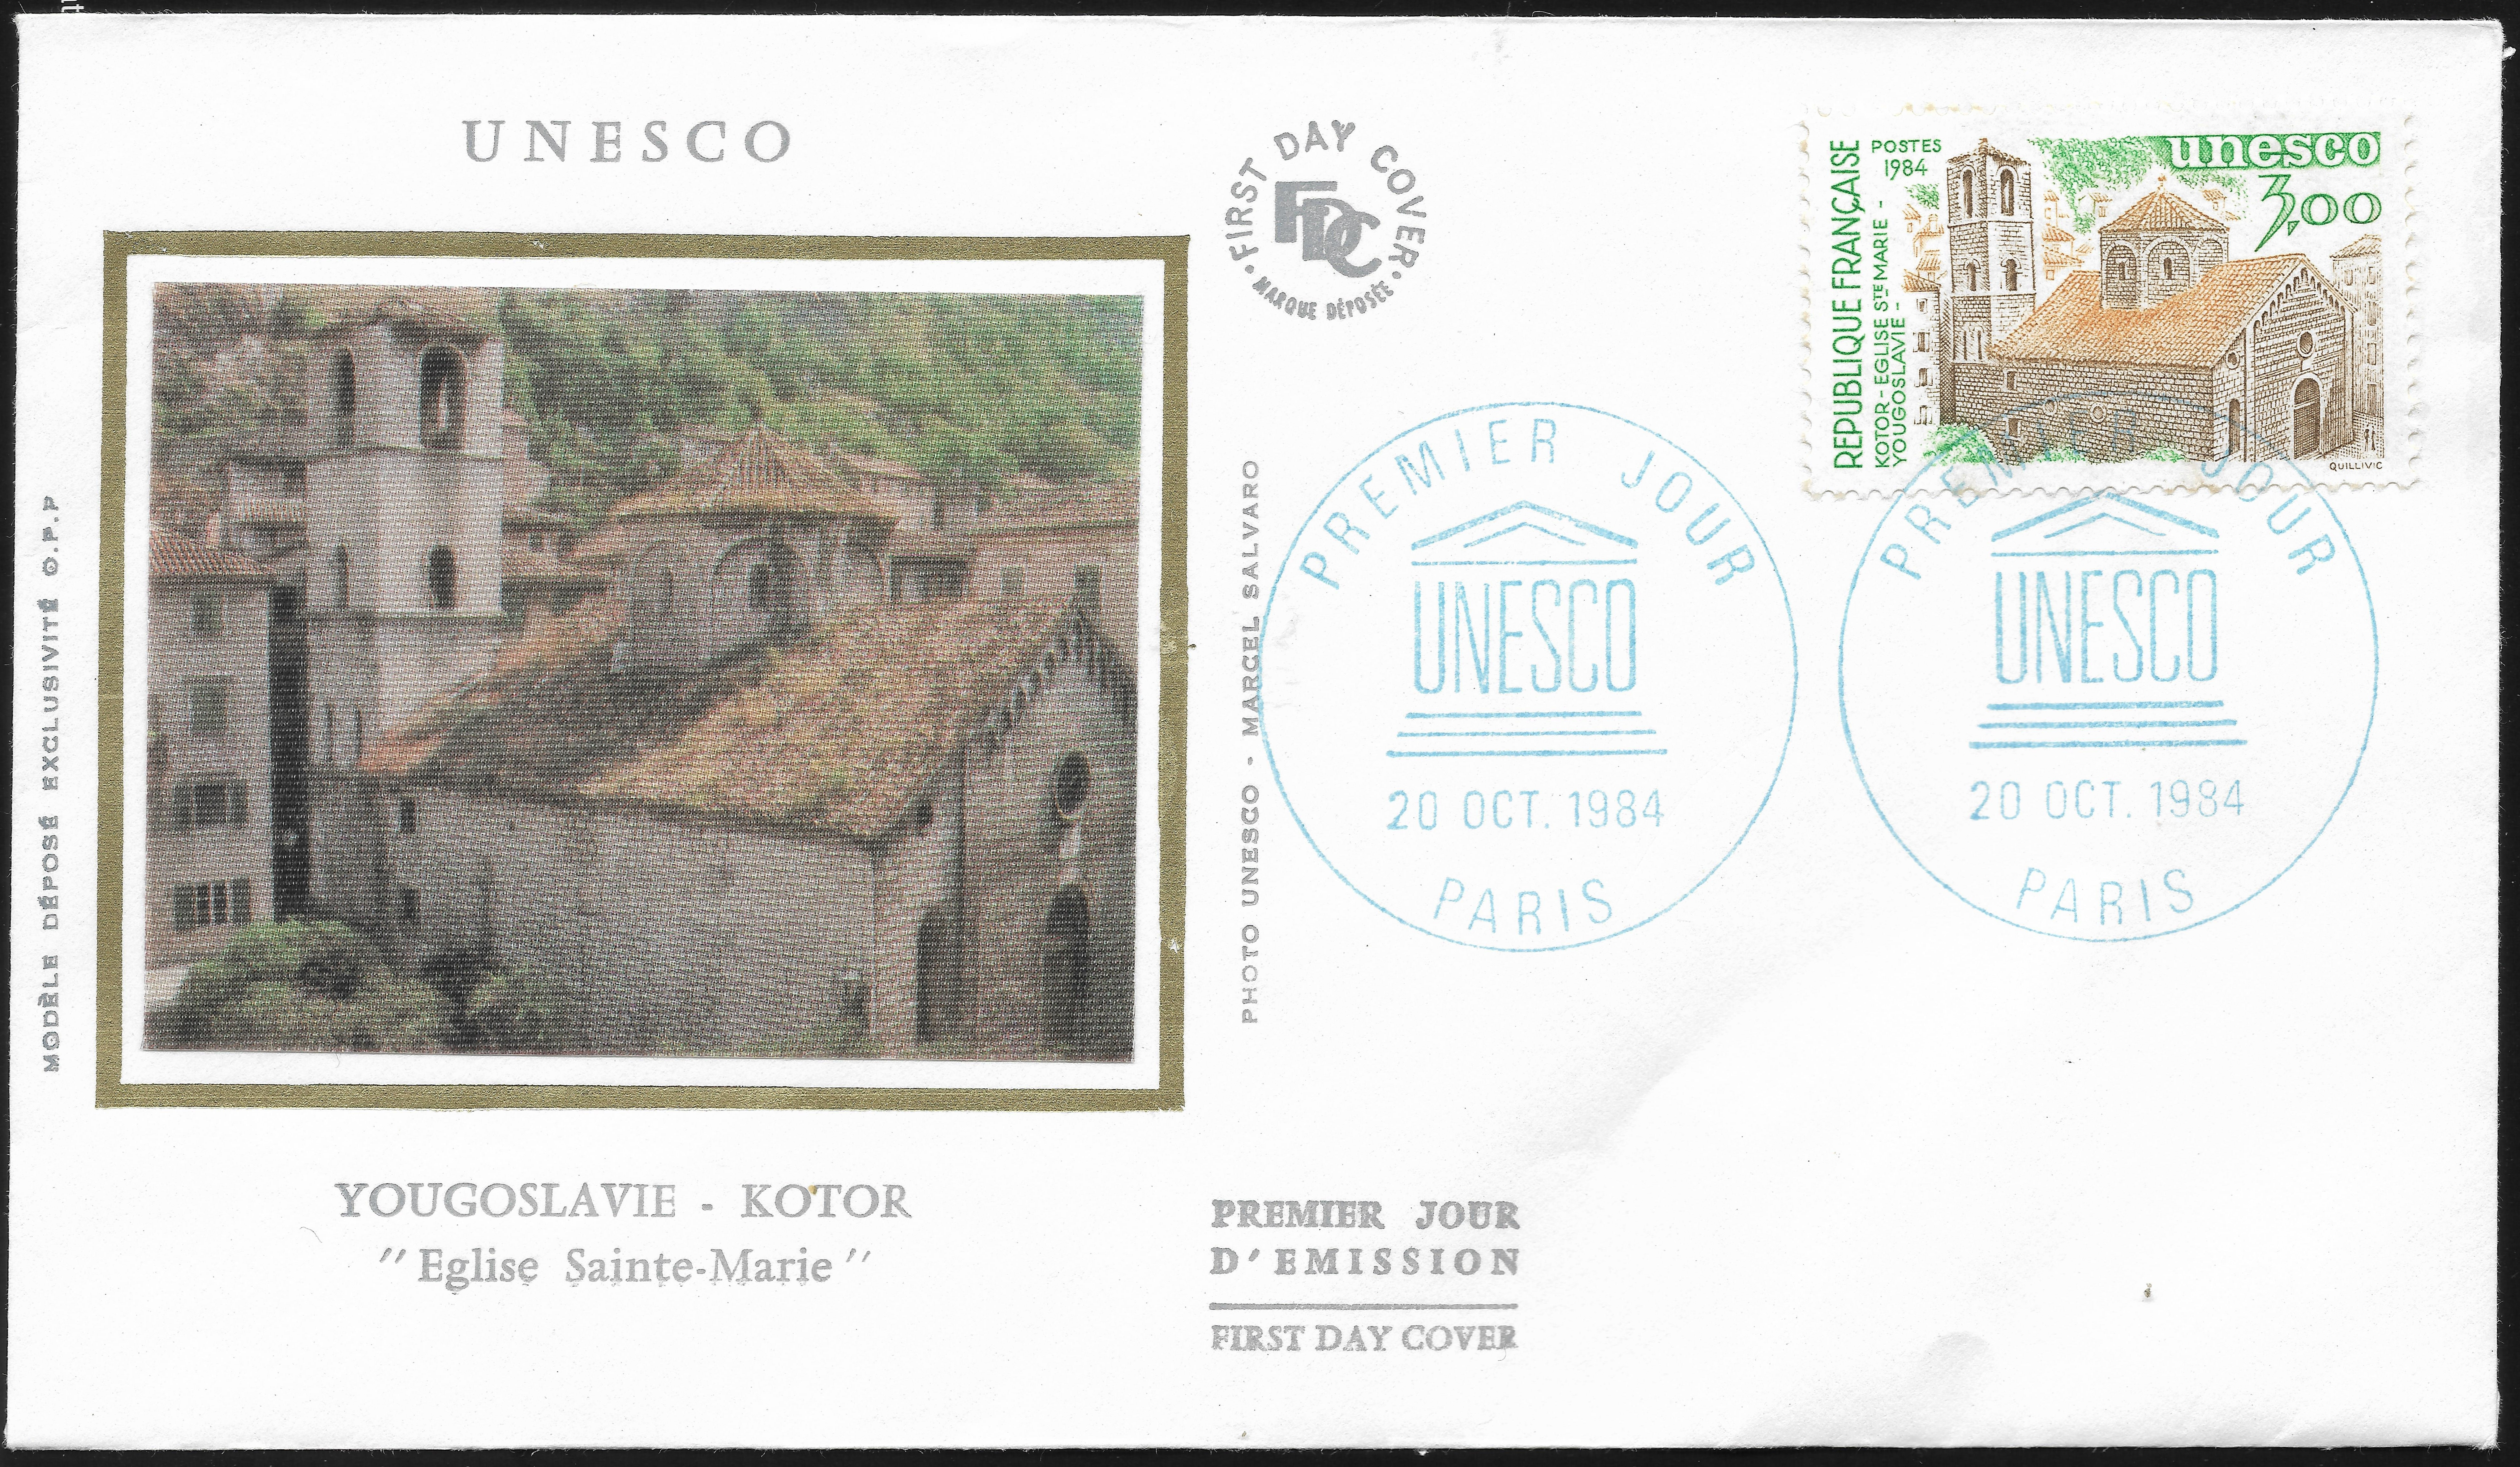 France Official Stamps for UNESCO - Scott #2O35 (1984) first day cover